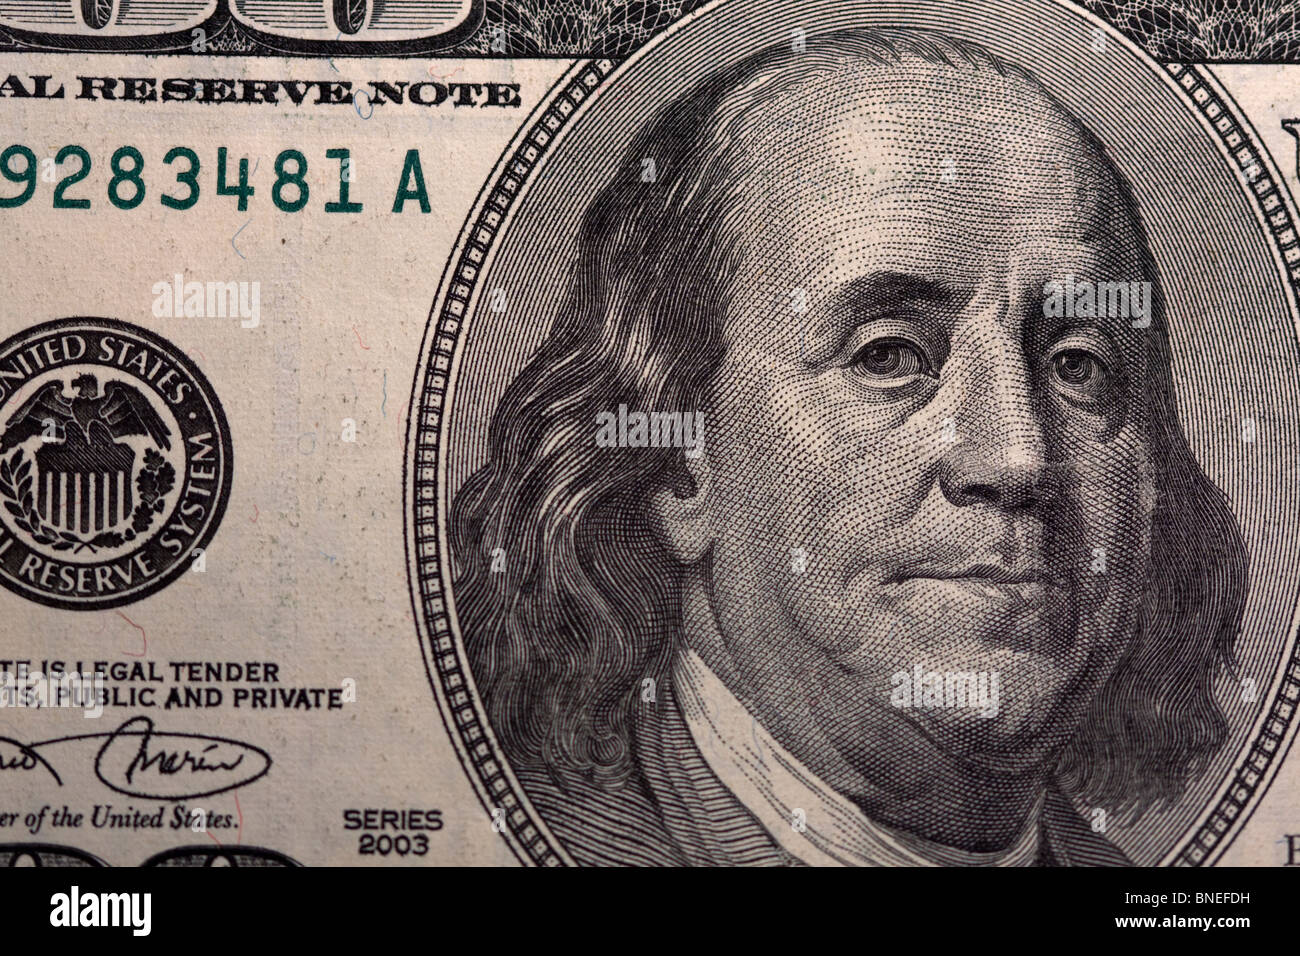 Close Up of Benjamin Franklin on the front of a US $100 Bill